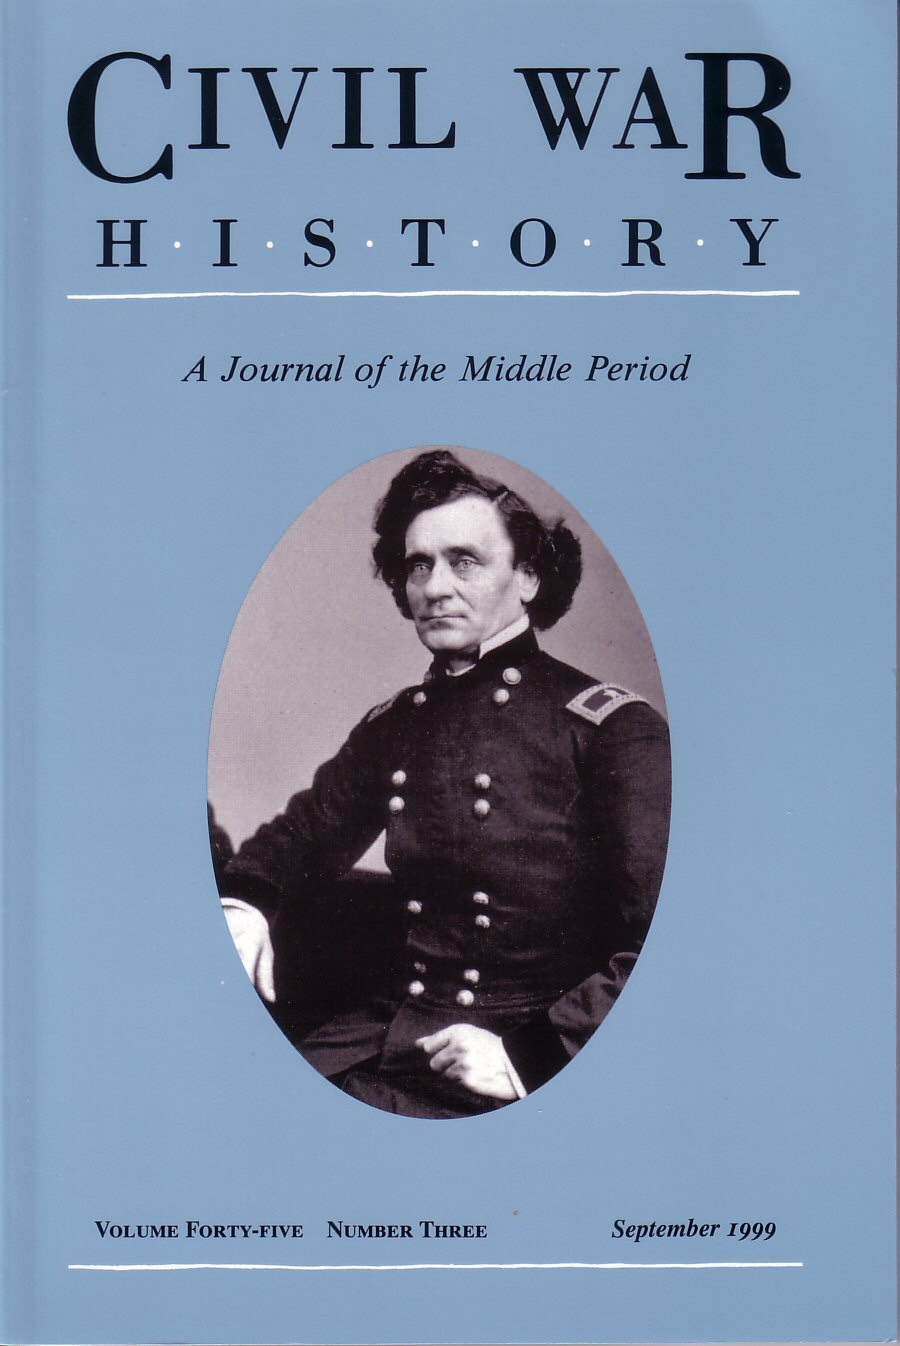 Civil War History, Volume 45, Number 3 (September 1999)